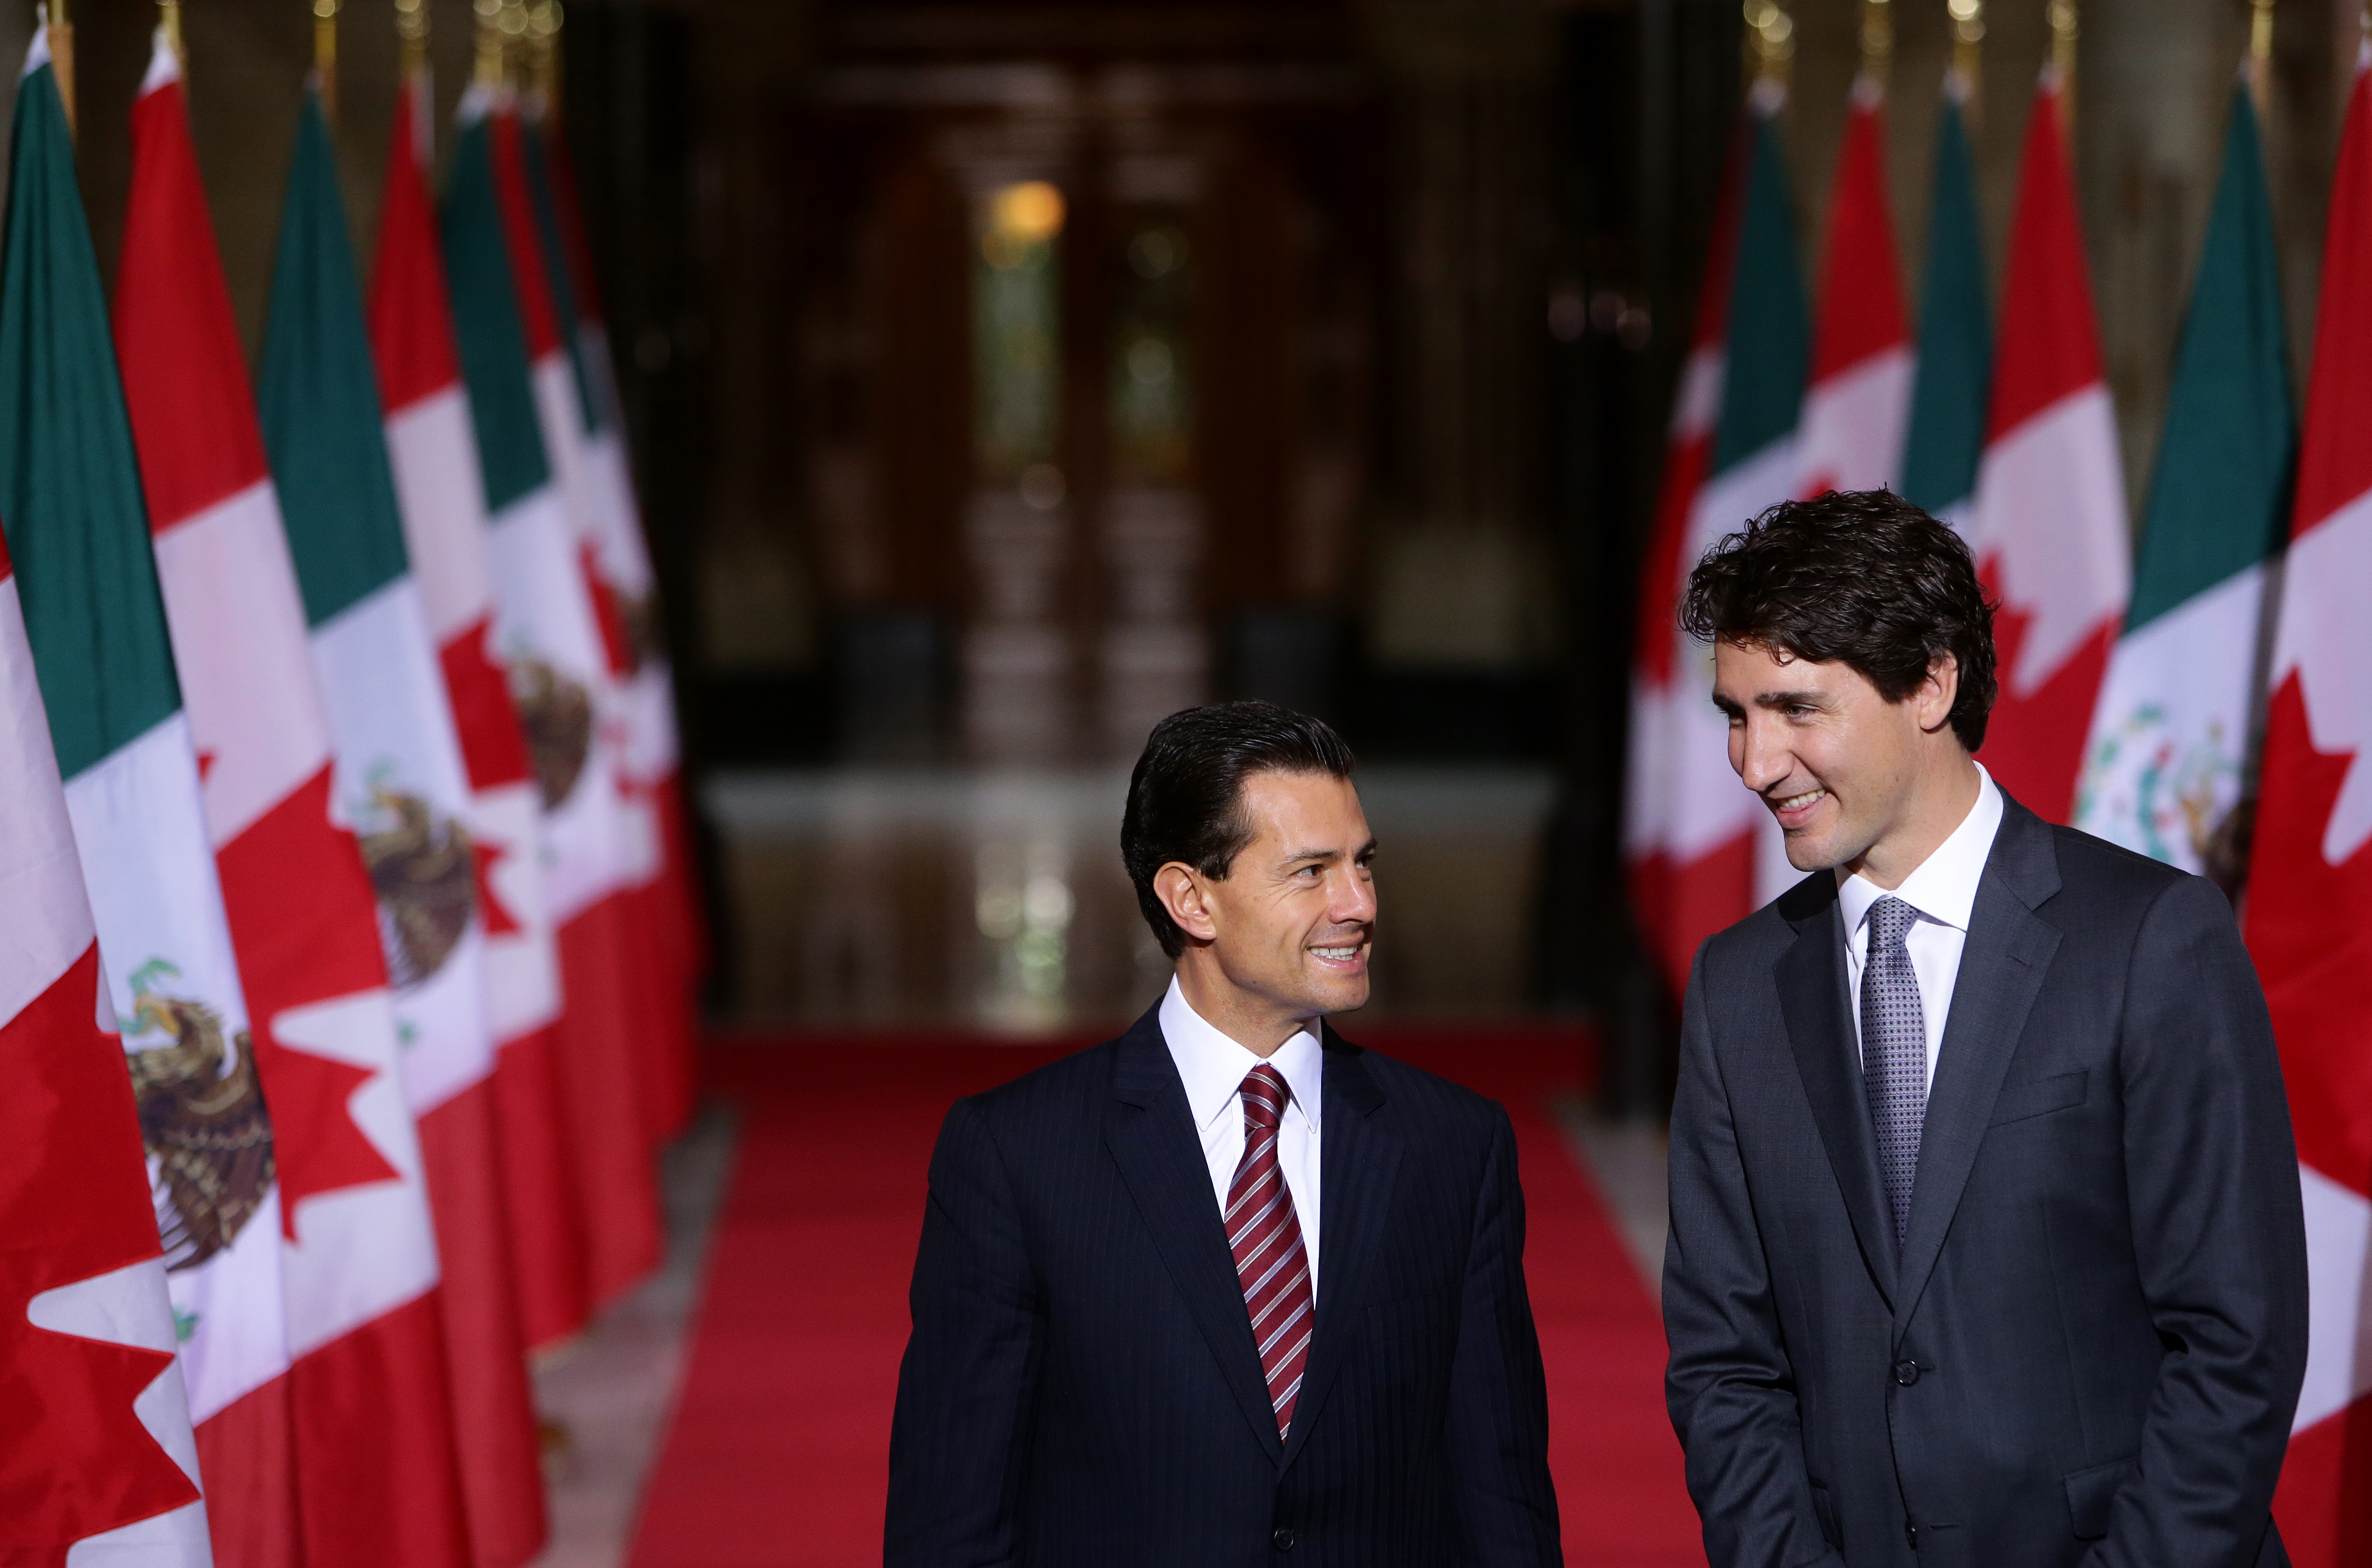 Justin Trudeau, Canada's prime minister, right, smiles with Enrique Pena Nieto, Mexico's president, in the Hall of Honour at Parliament Hill ahead of the North American Leaders Summit (NALS) in Ottawa, Ontario, Canada, on June 28, 2016.